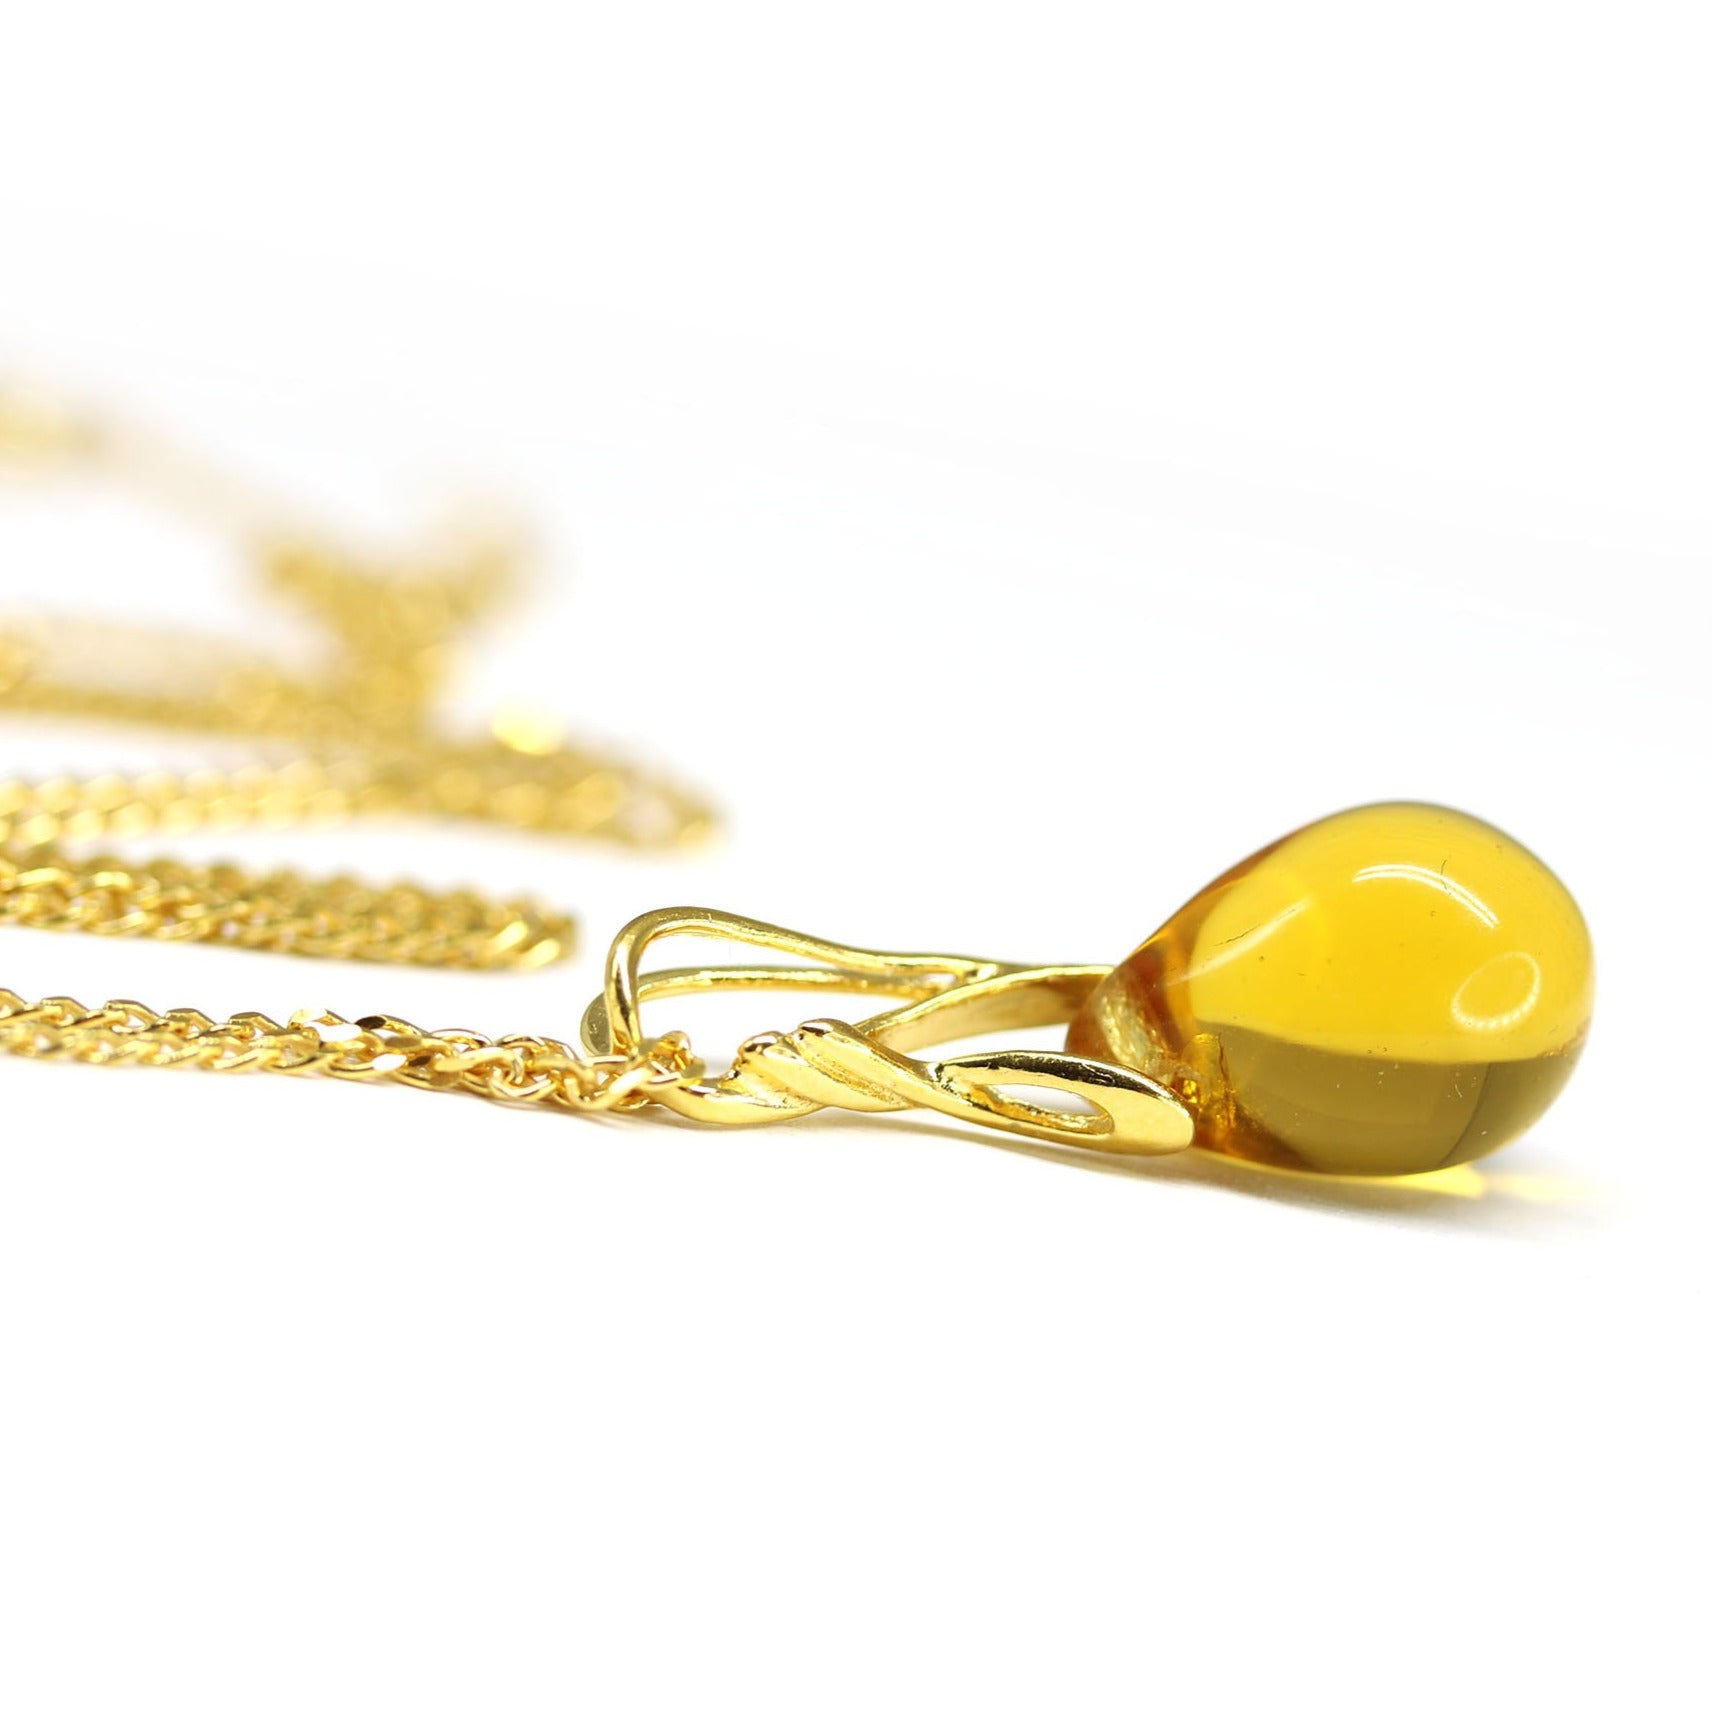 Amber yellow drop glass pendant on golden coated chain